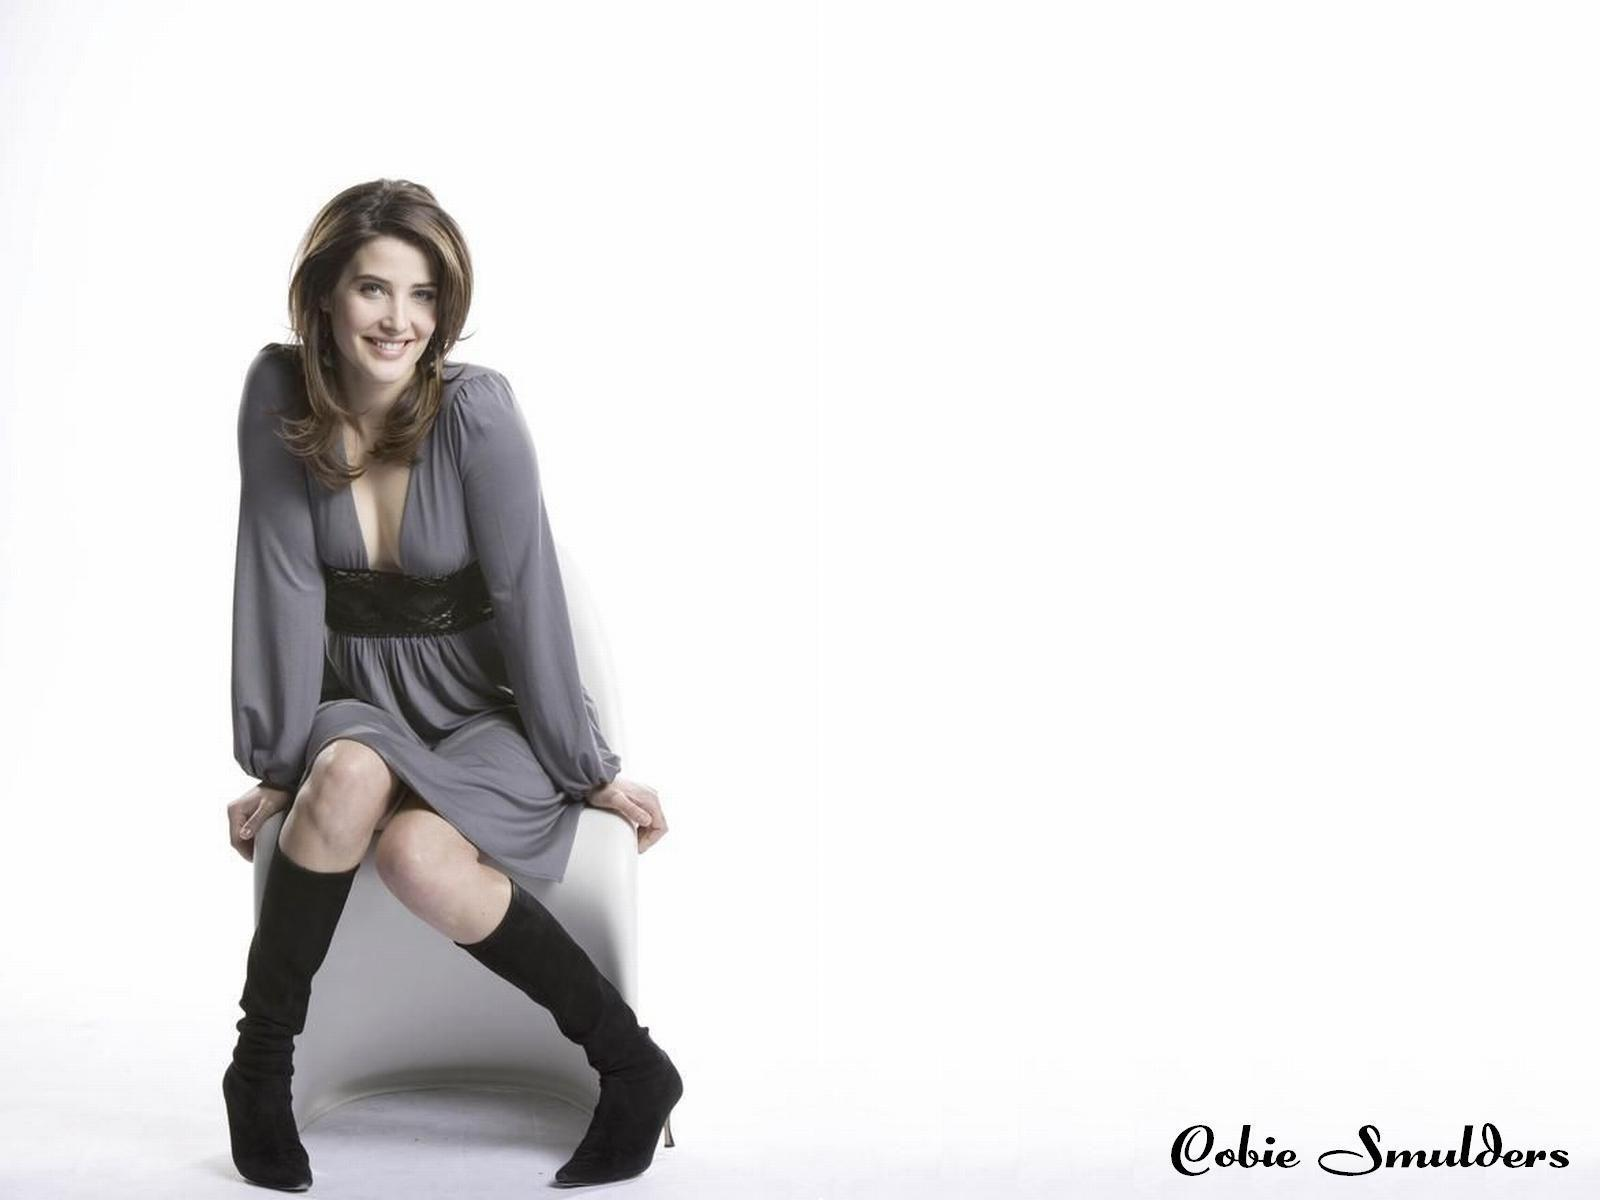 1600x1200 - Cobie Smulders Wallpapers 9